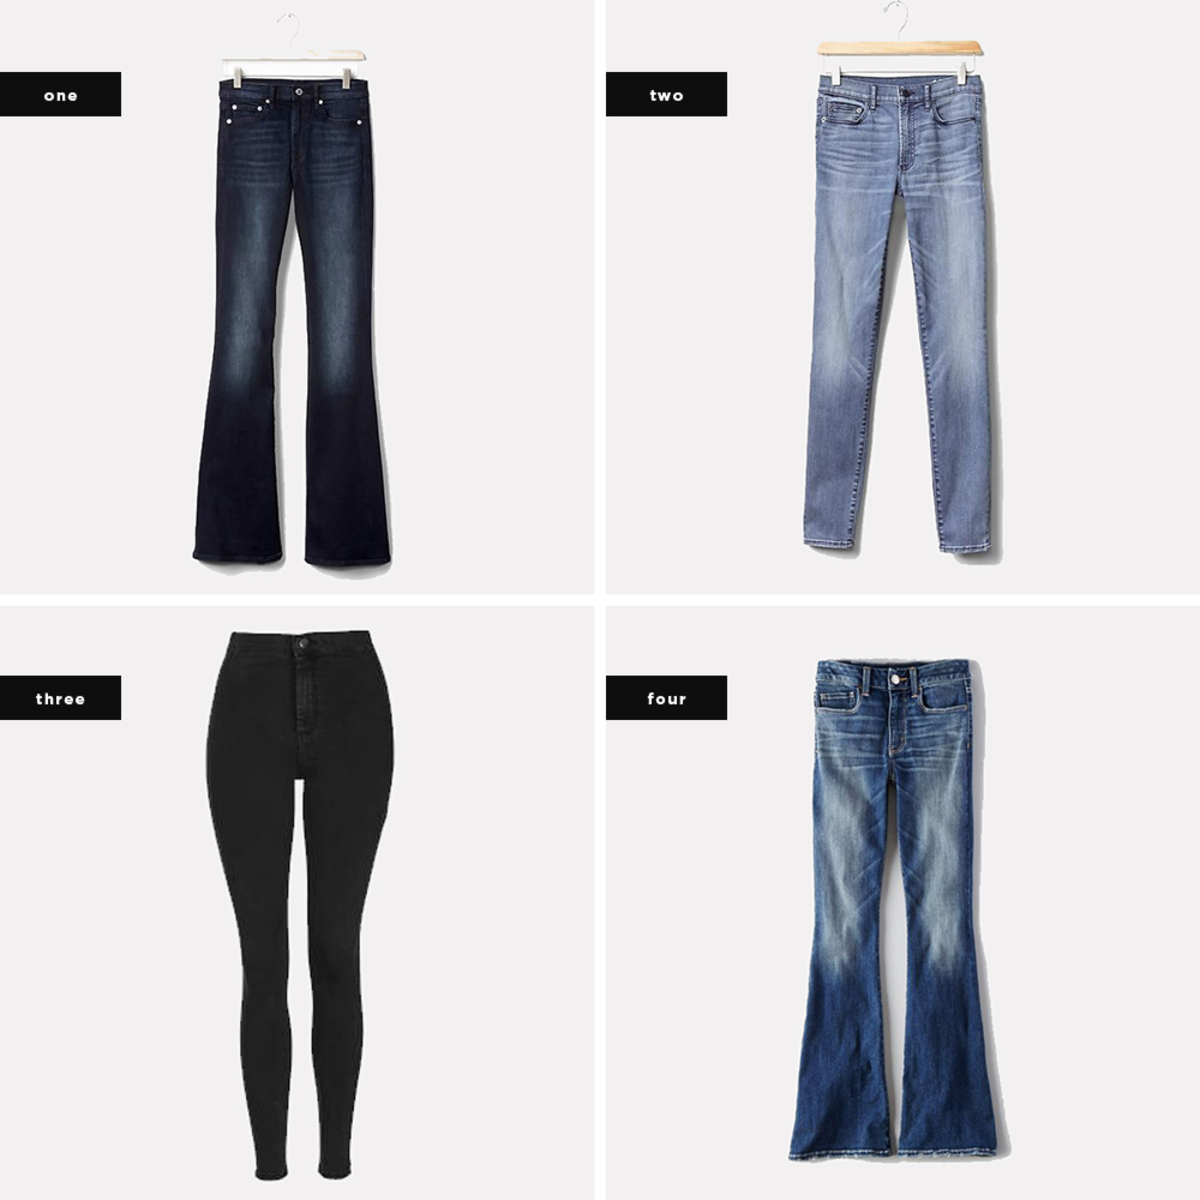 1. Gap, $70 / 2. Gap, $70 / 3. Topshop, $65 / 4. American Eagle Outfitters, $45